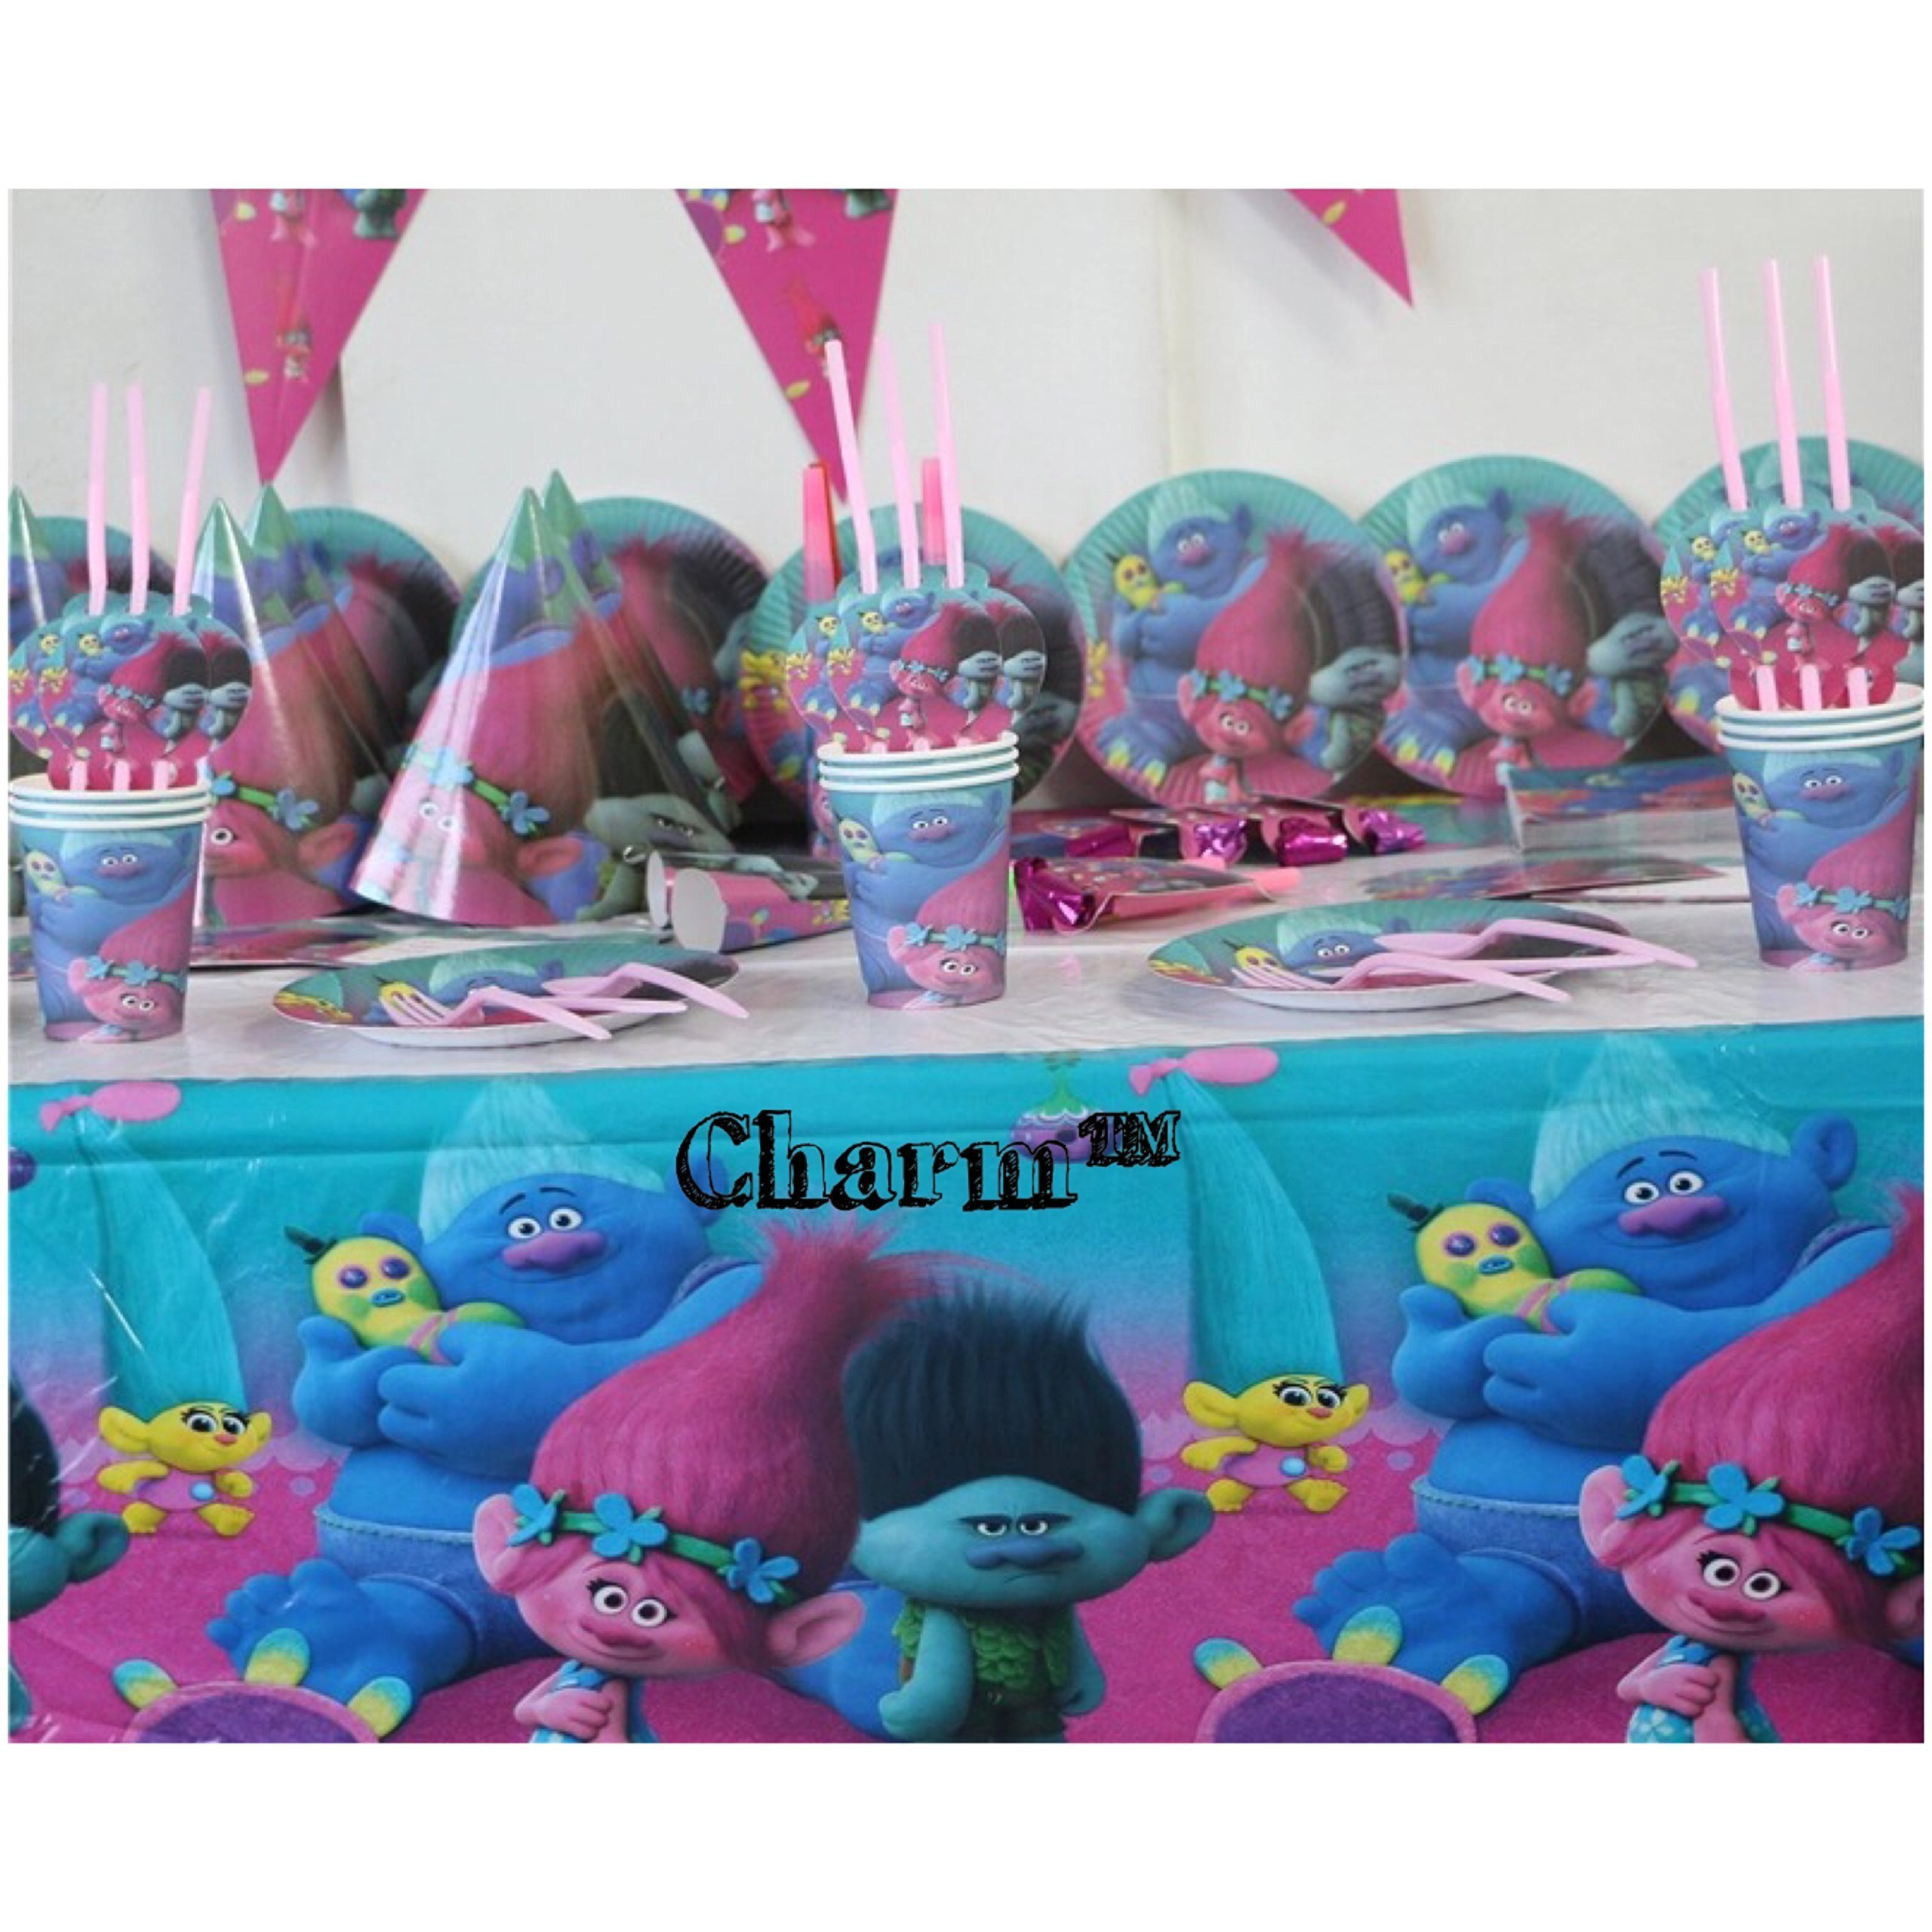 TR Set of 2 Tablecloths Plastic 42'' X 70'' Kids Birthday Party Decorations and Supplies by CharmTM